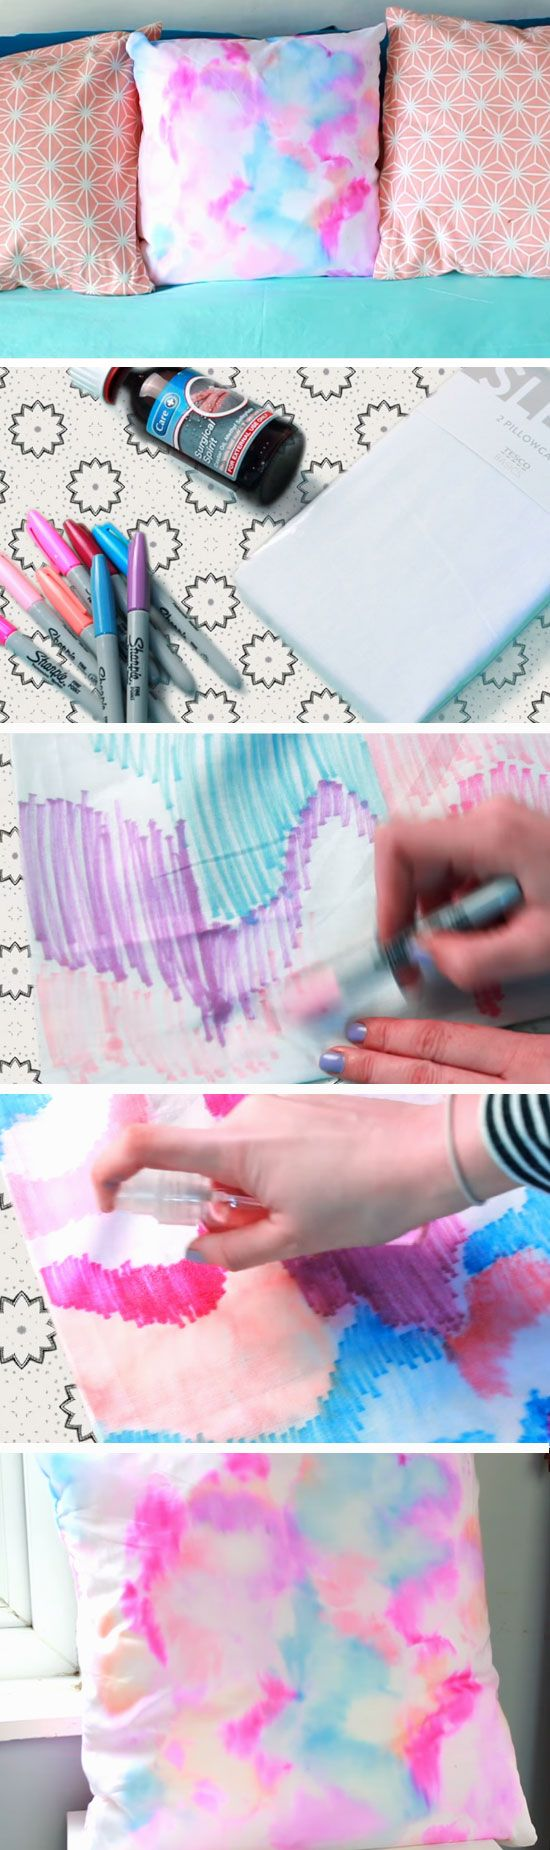 Water Color Pillows | DIY Spring Room Decor Ideas for Teens | Easy Summer Crafts for Kids to Make